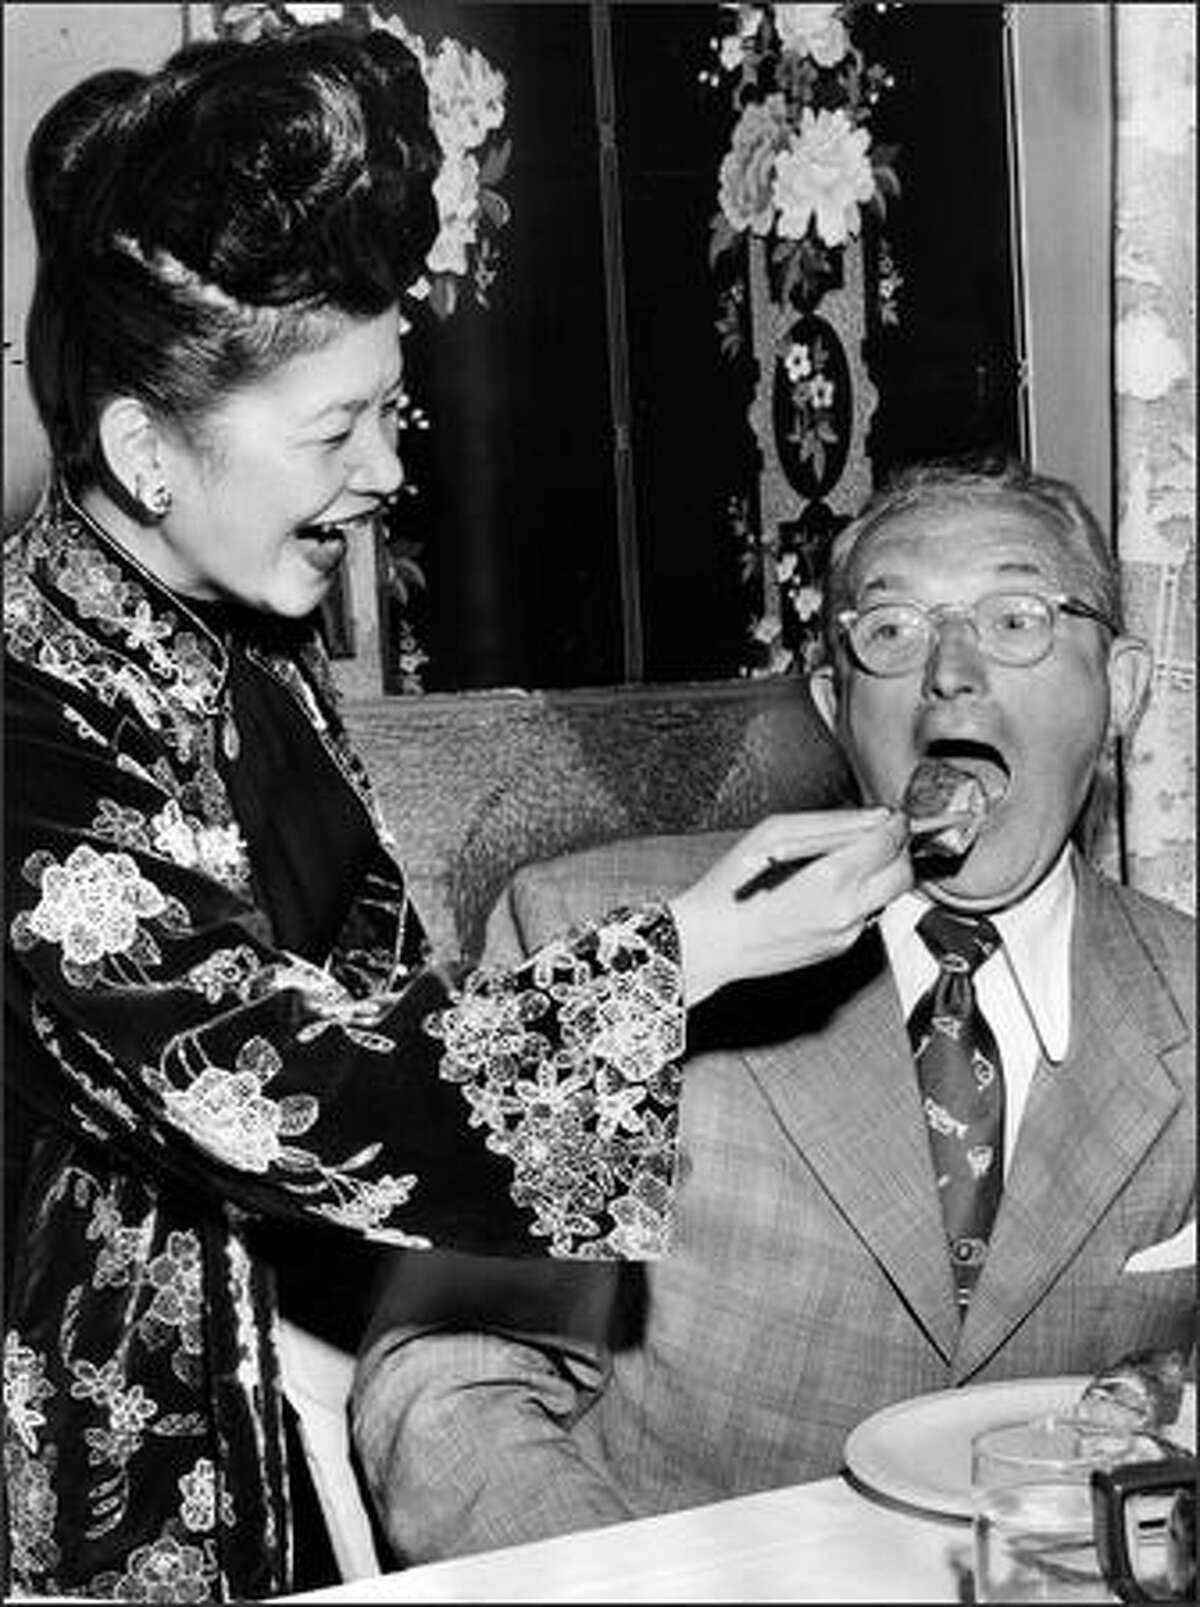 07/23/1951 - Ruby Chow feeding Tommy Dorsey egg roll via chop sticks